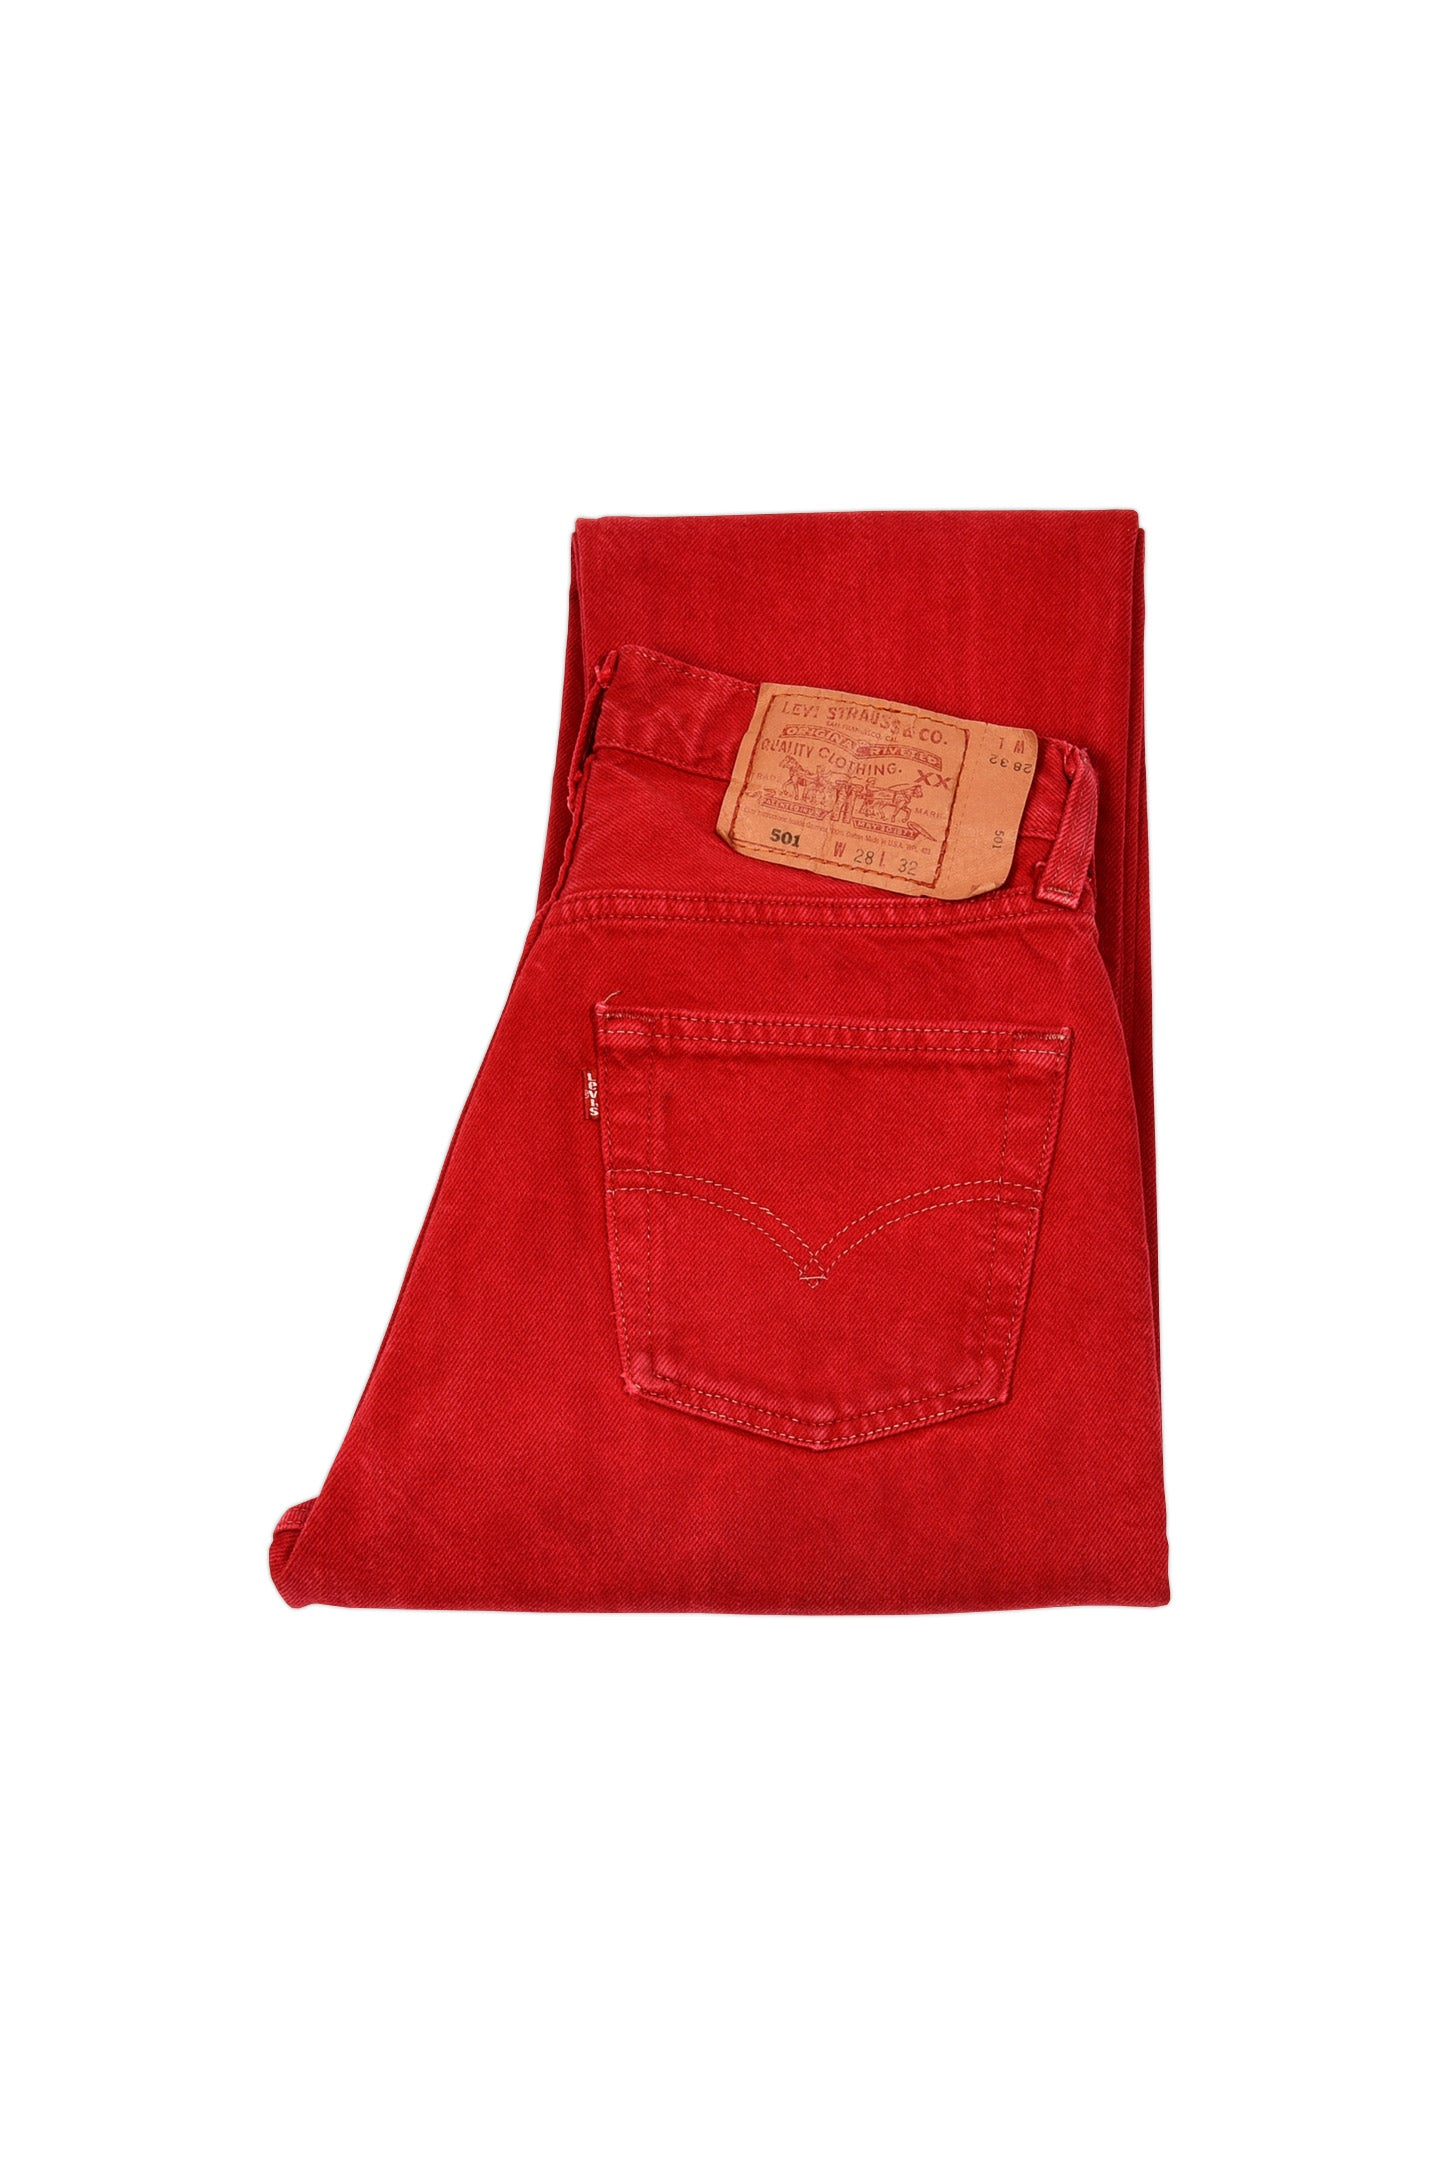 LEVI'S 501 ORIGINAL FIT JEANS RED